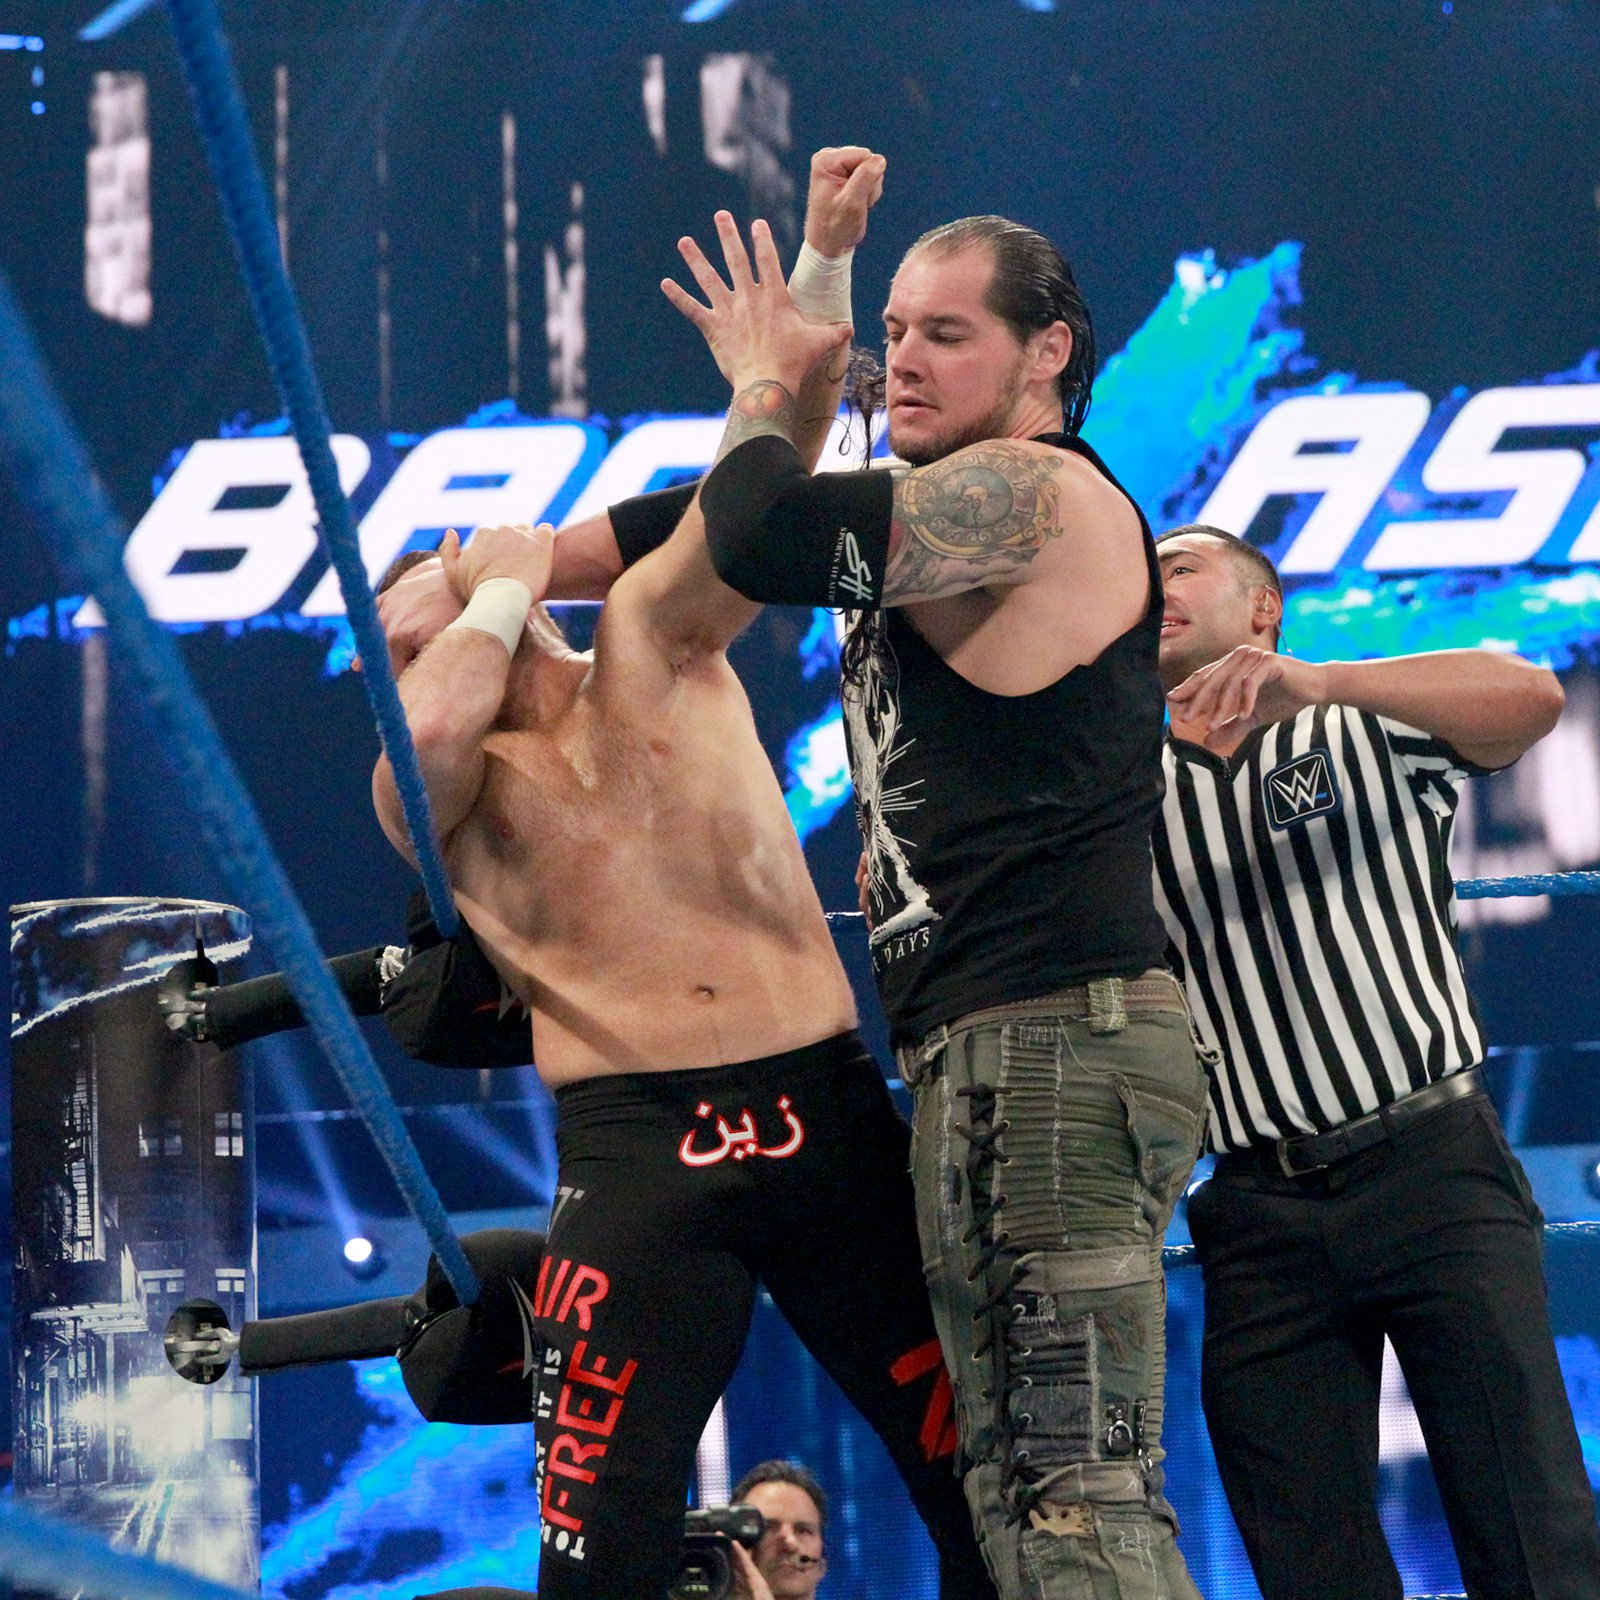 Baron Corbin immediately uses his size and strength to his advantage against Sami Zayn.